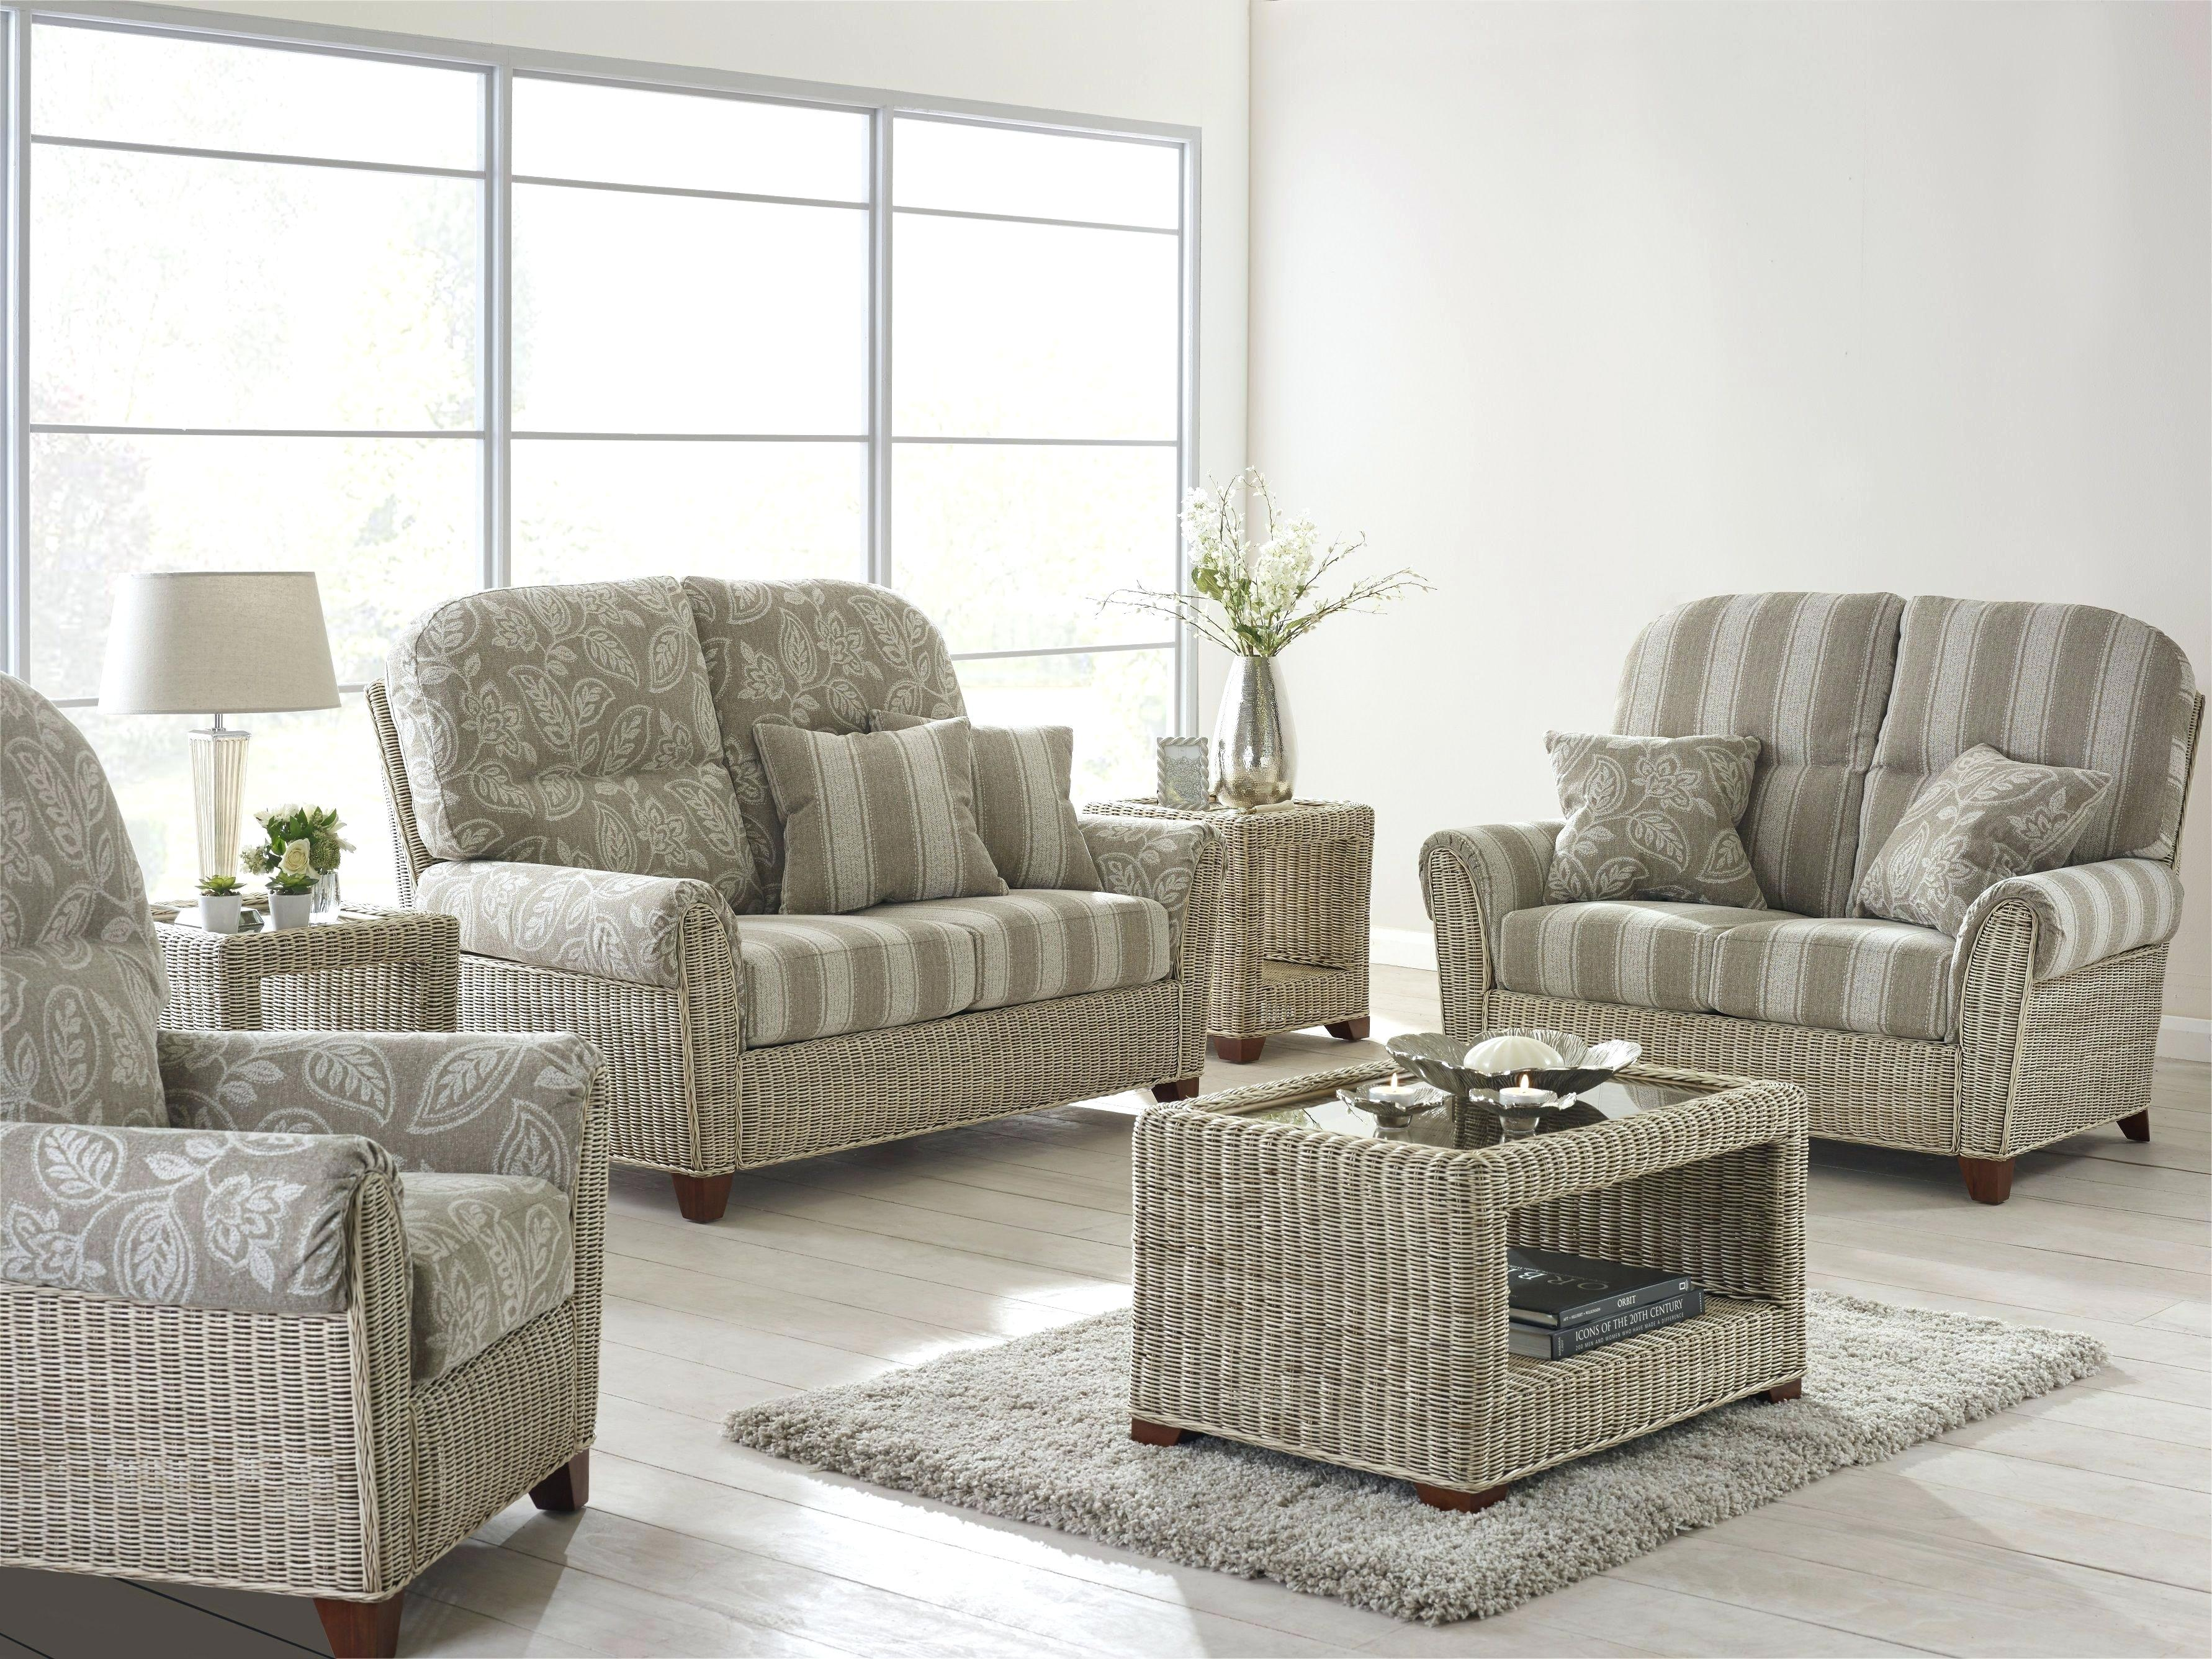 best living room chairs living room chairs cheap fresh best cheap sofas and  armchairs living room .